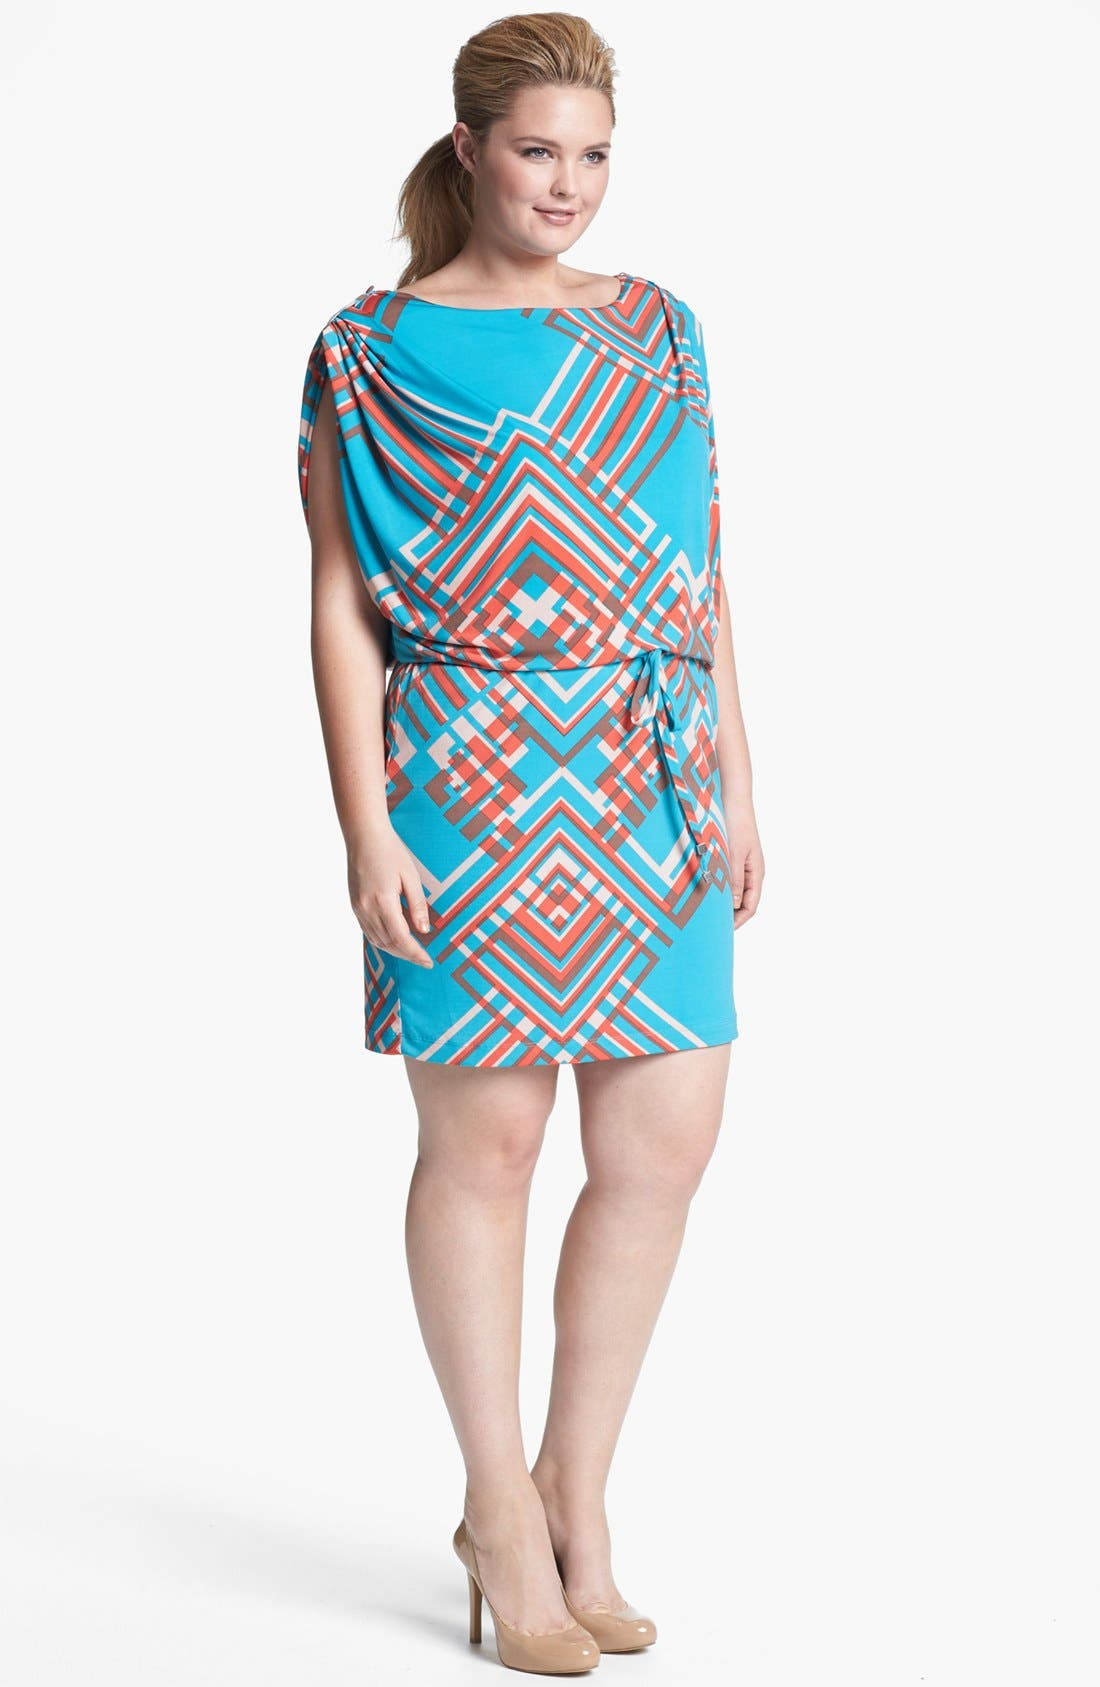 Alternate Image 1 Selected - Jessica Simpson Print Jersey Blouson Dress (Plus Size)